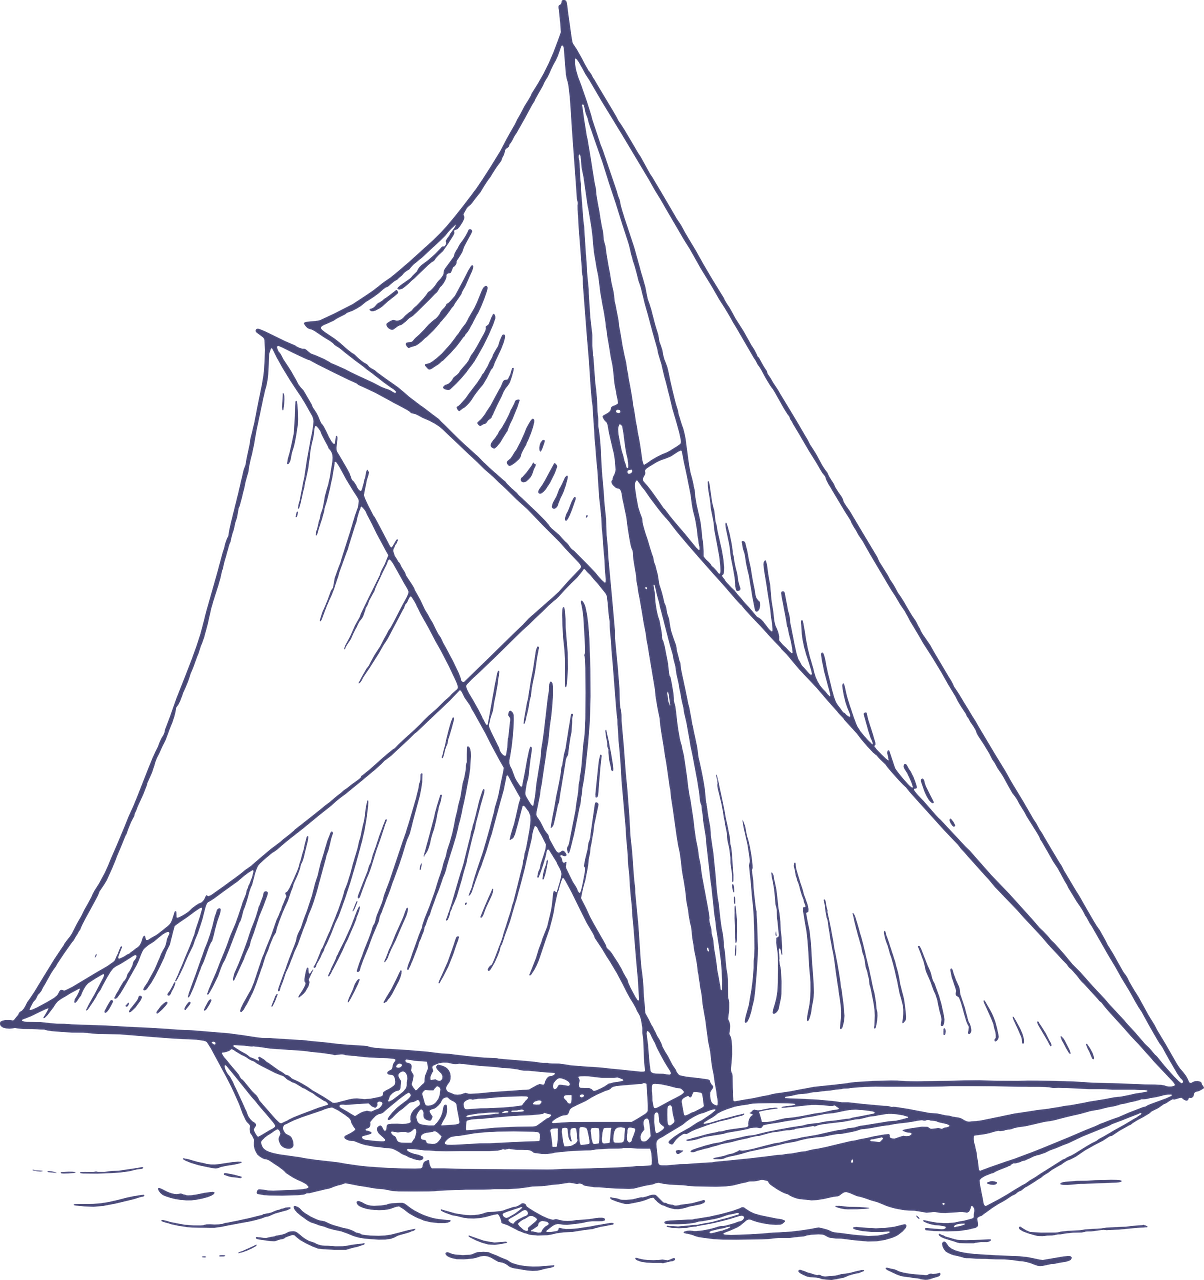 How to draw a boat. stencils 5